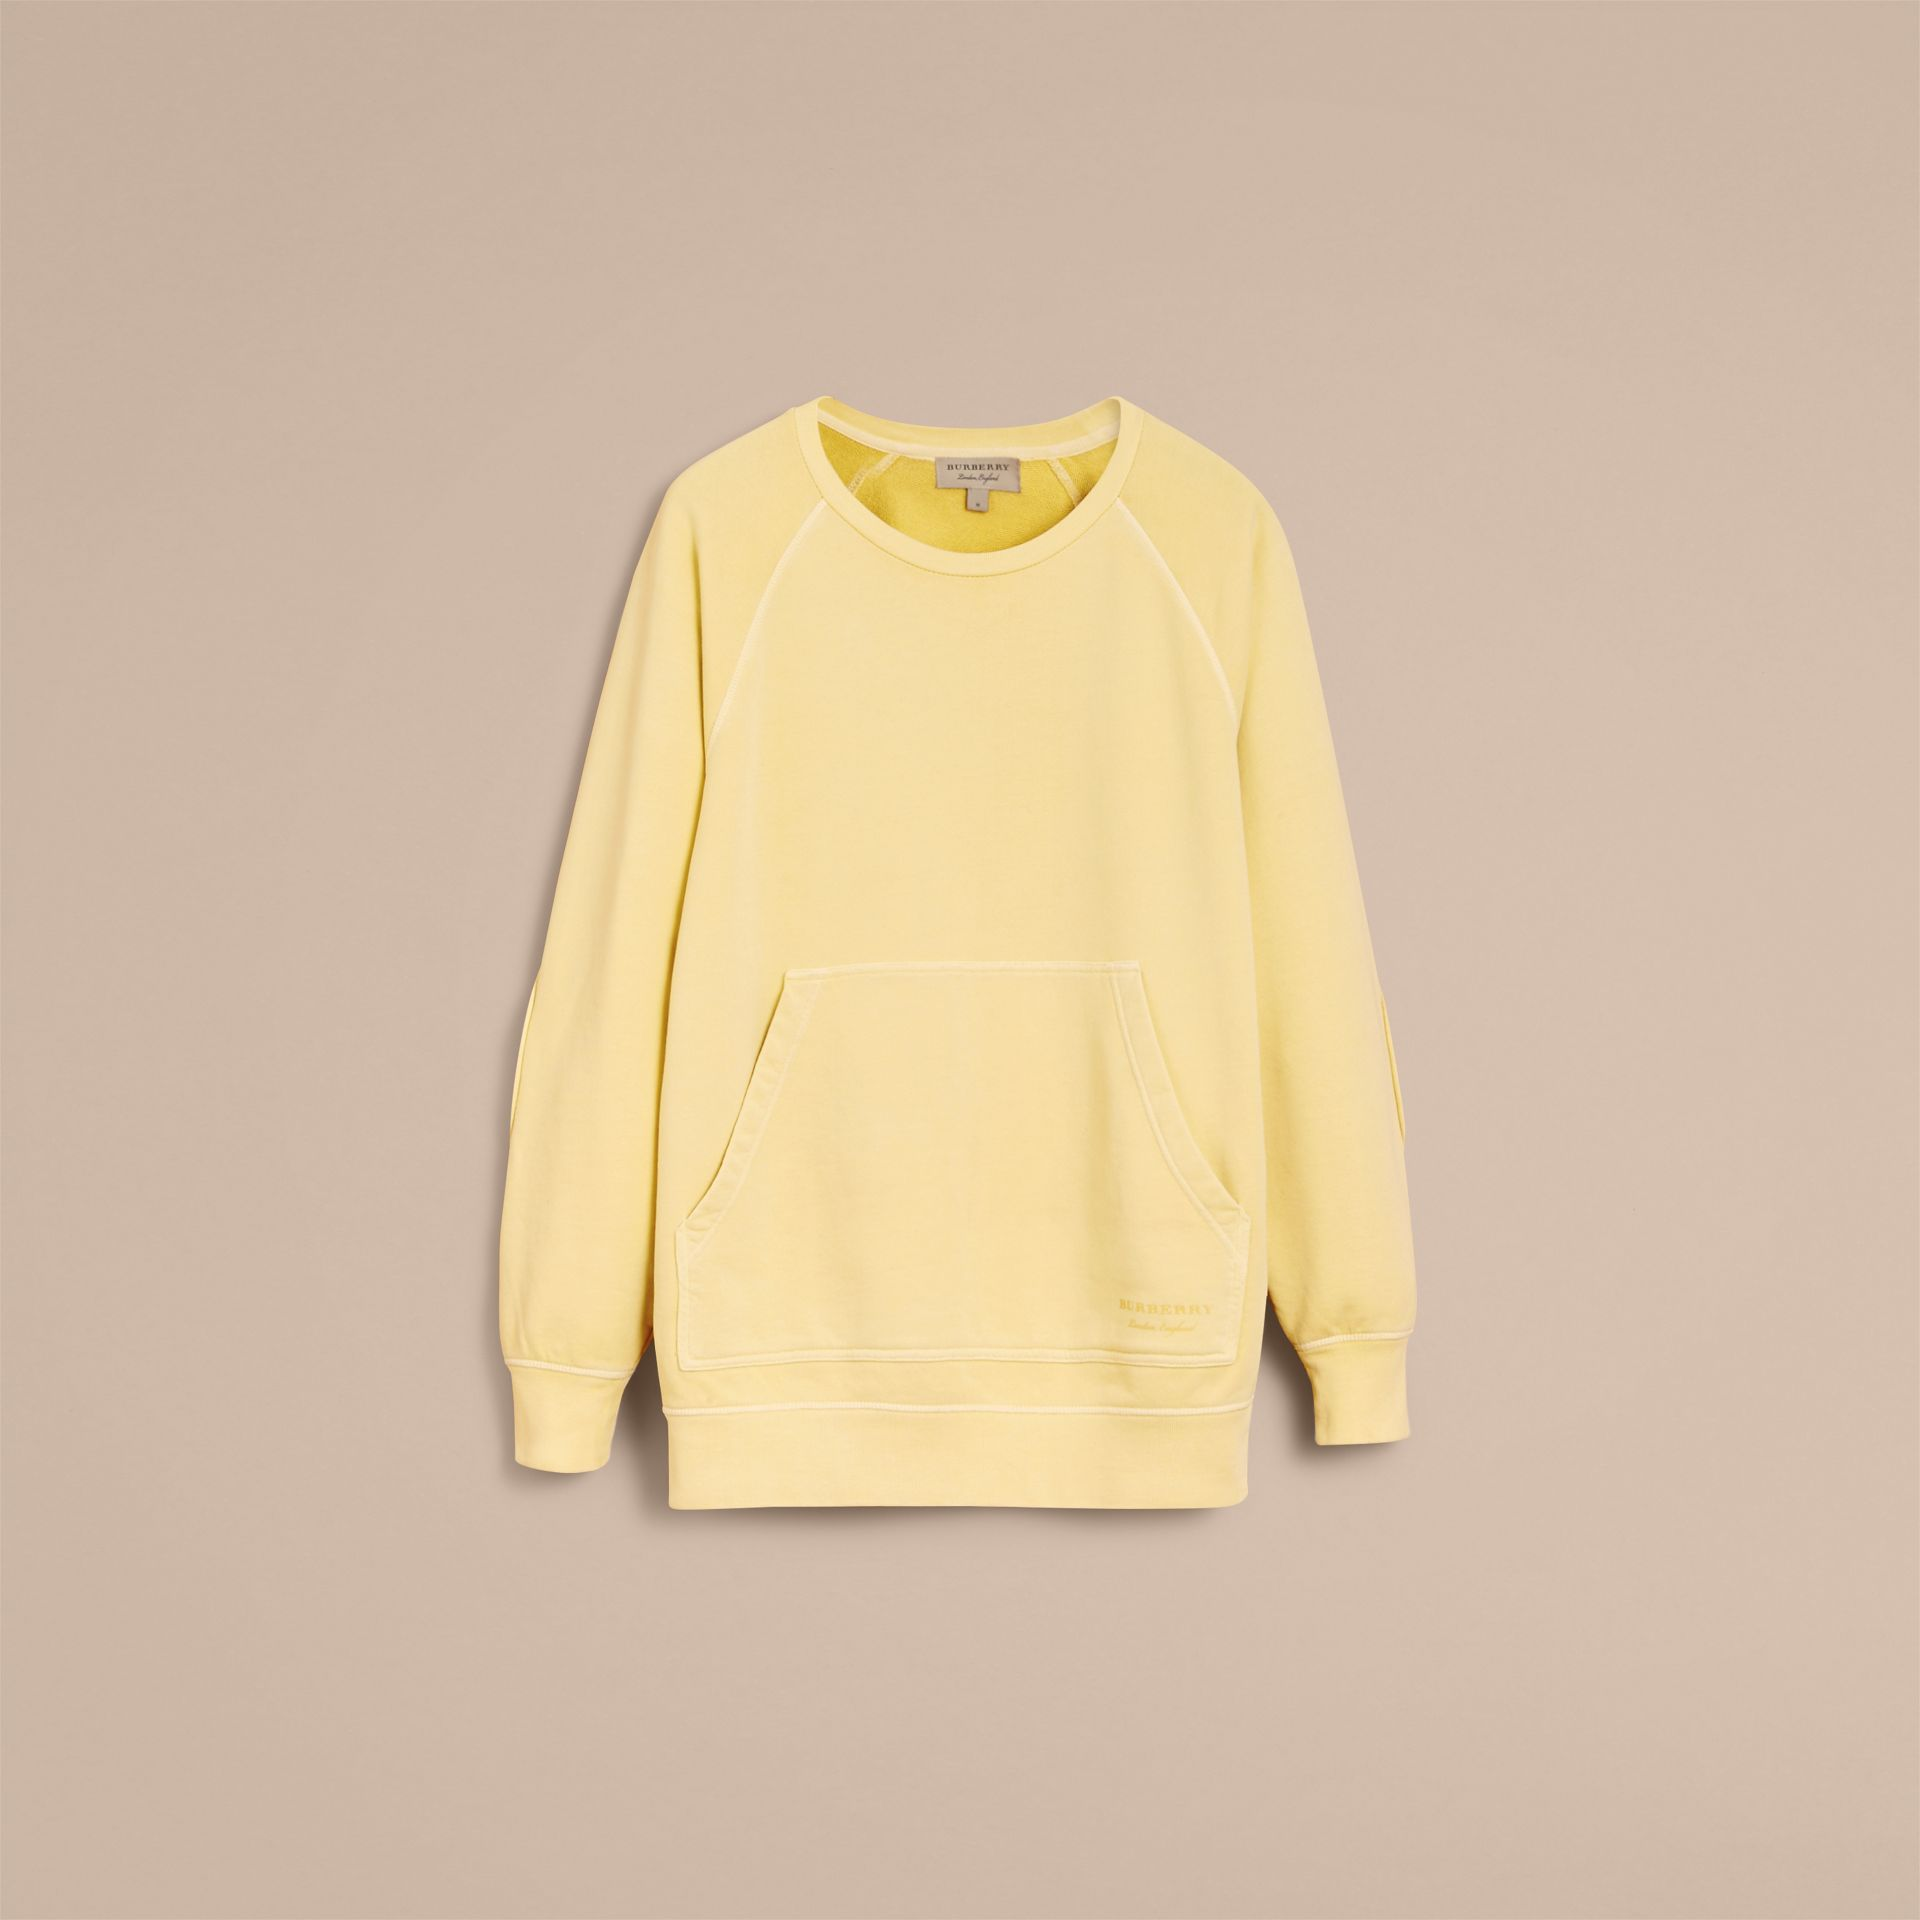 Unisex Pigment-dyed Cotton Oversize Sweatshirt Pale Yellow - gallery image 4